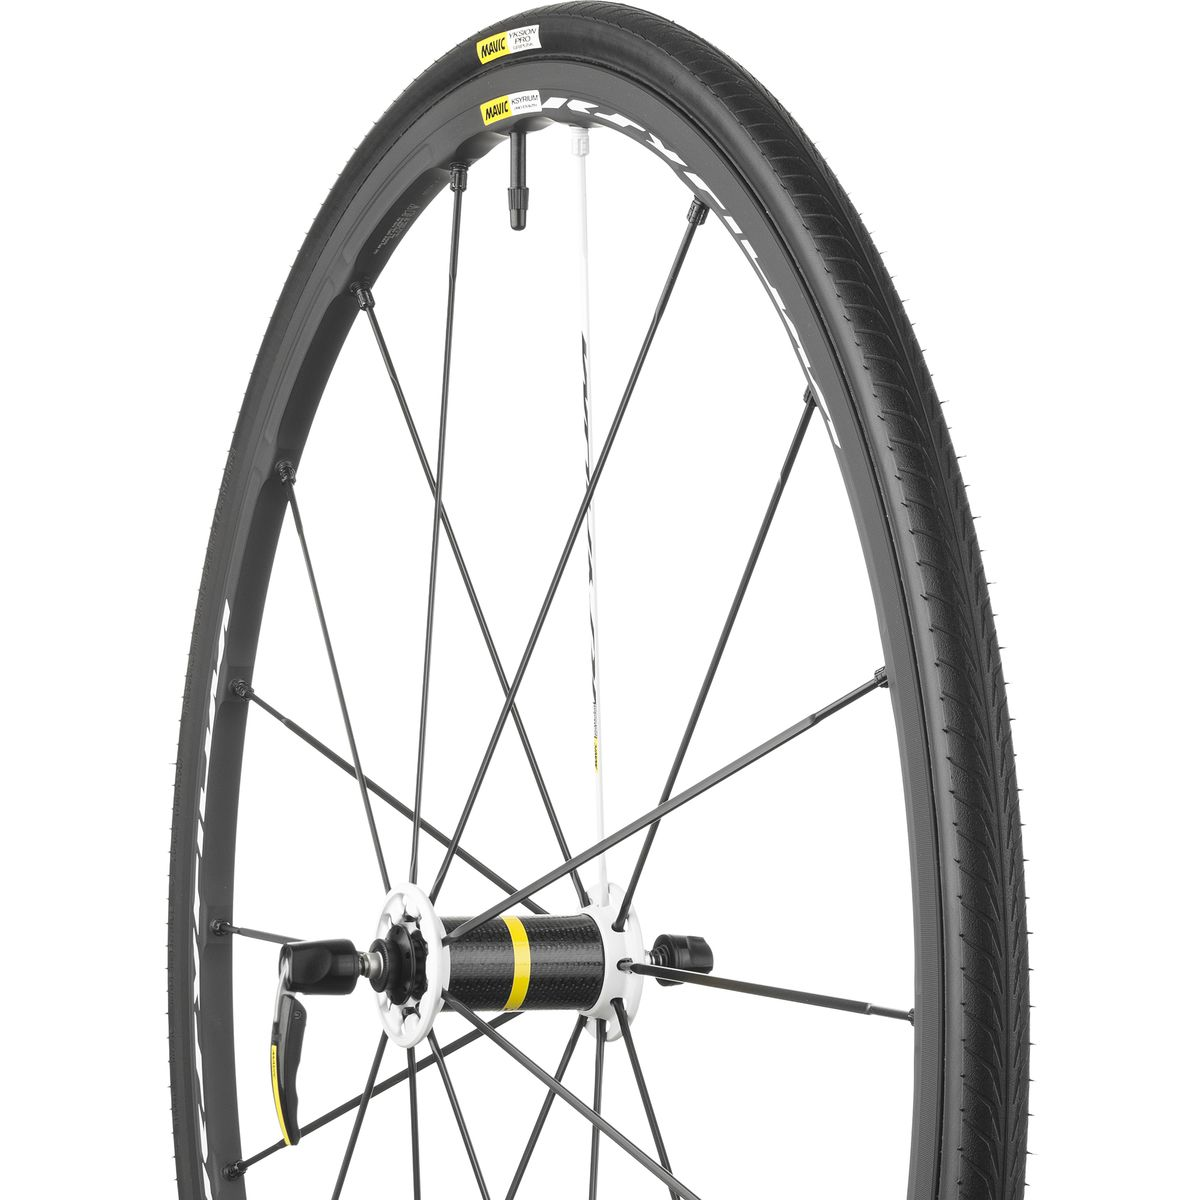 dating mavic rims Wheels, wheelsets & rims for sale in new zealand buy and sell wheels, wheelsets & rims on trade me this is page 2.